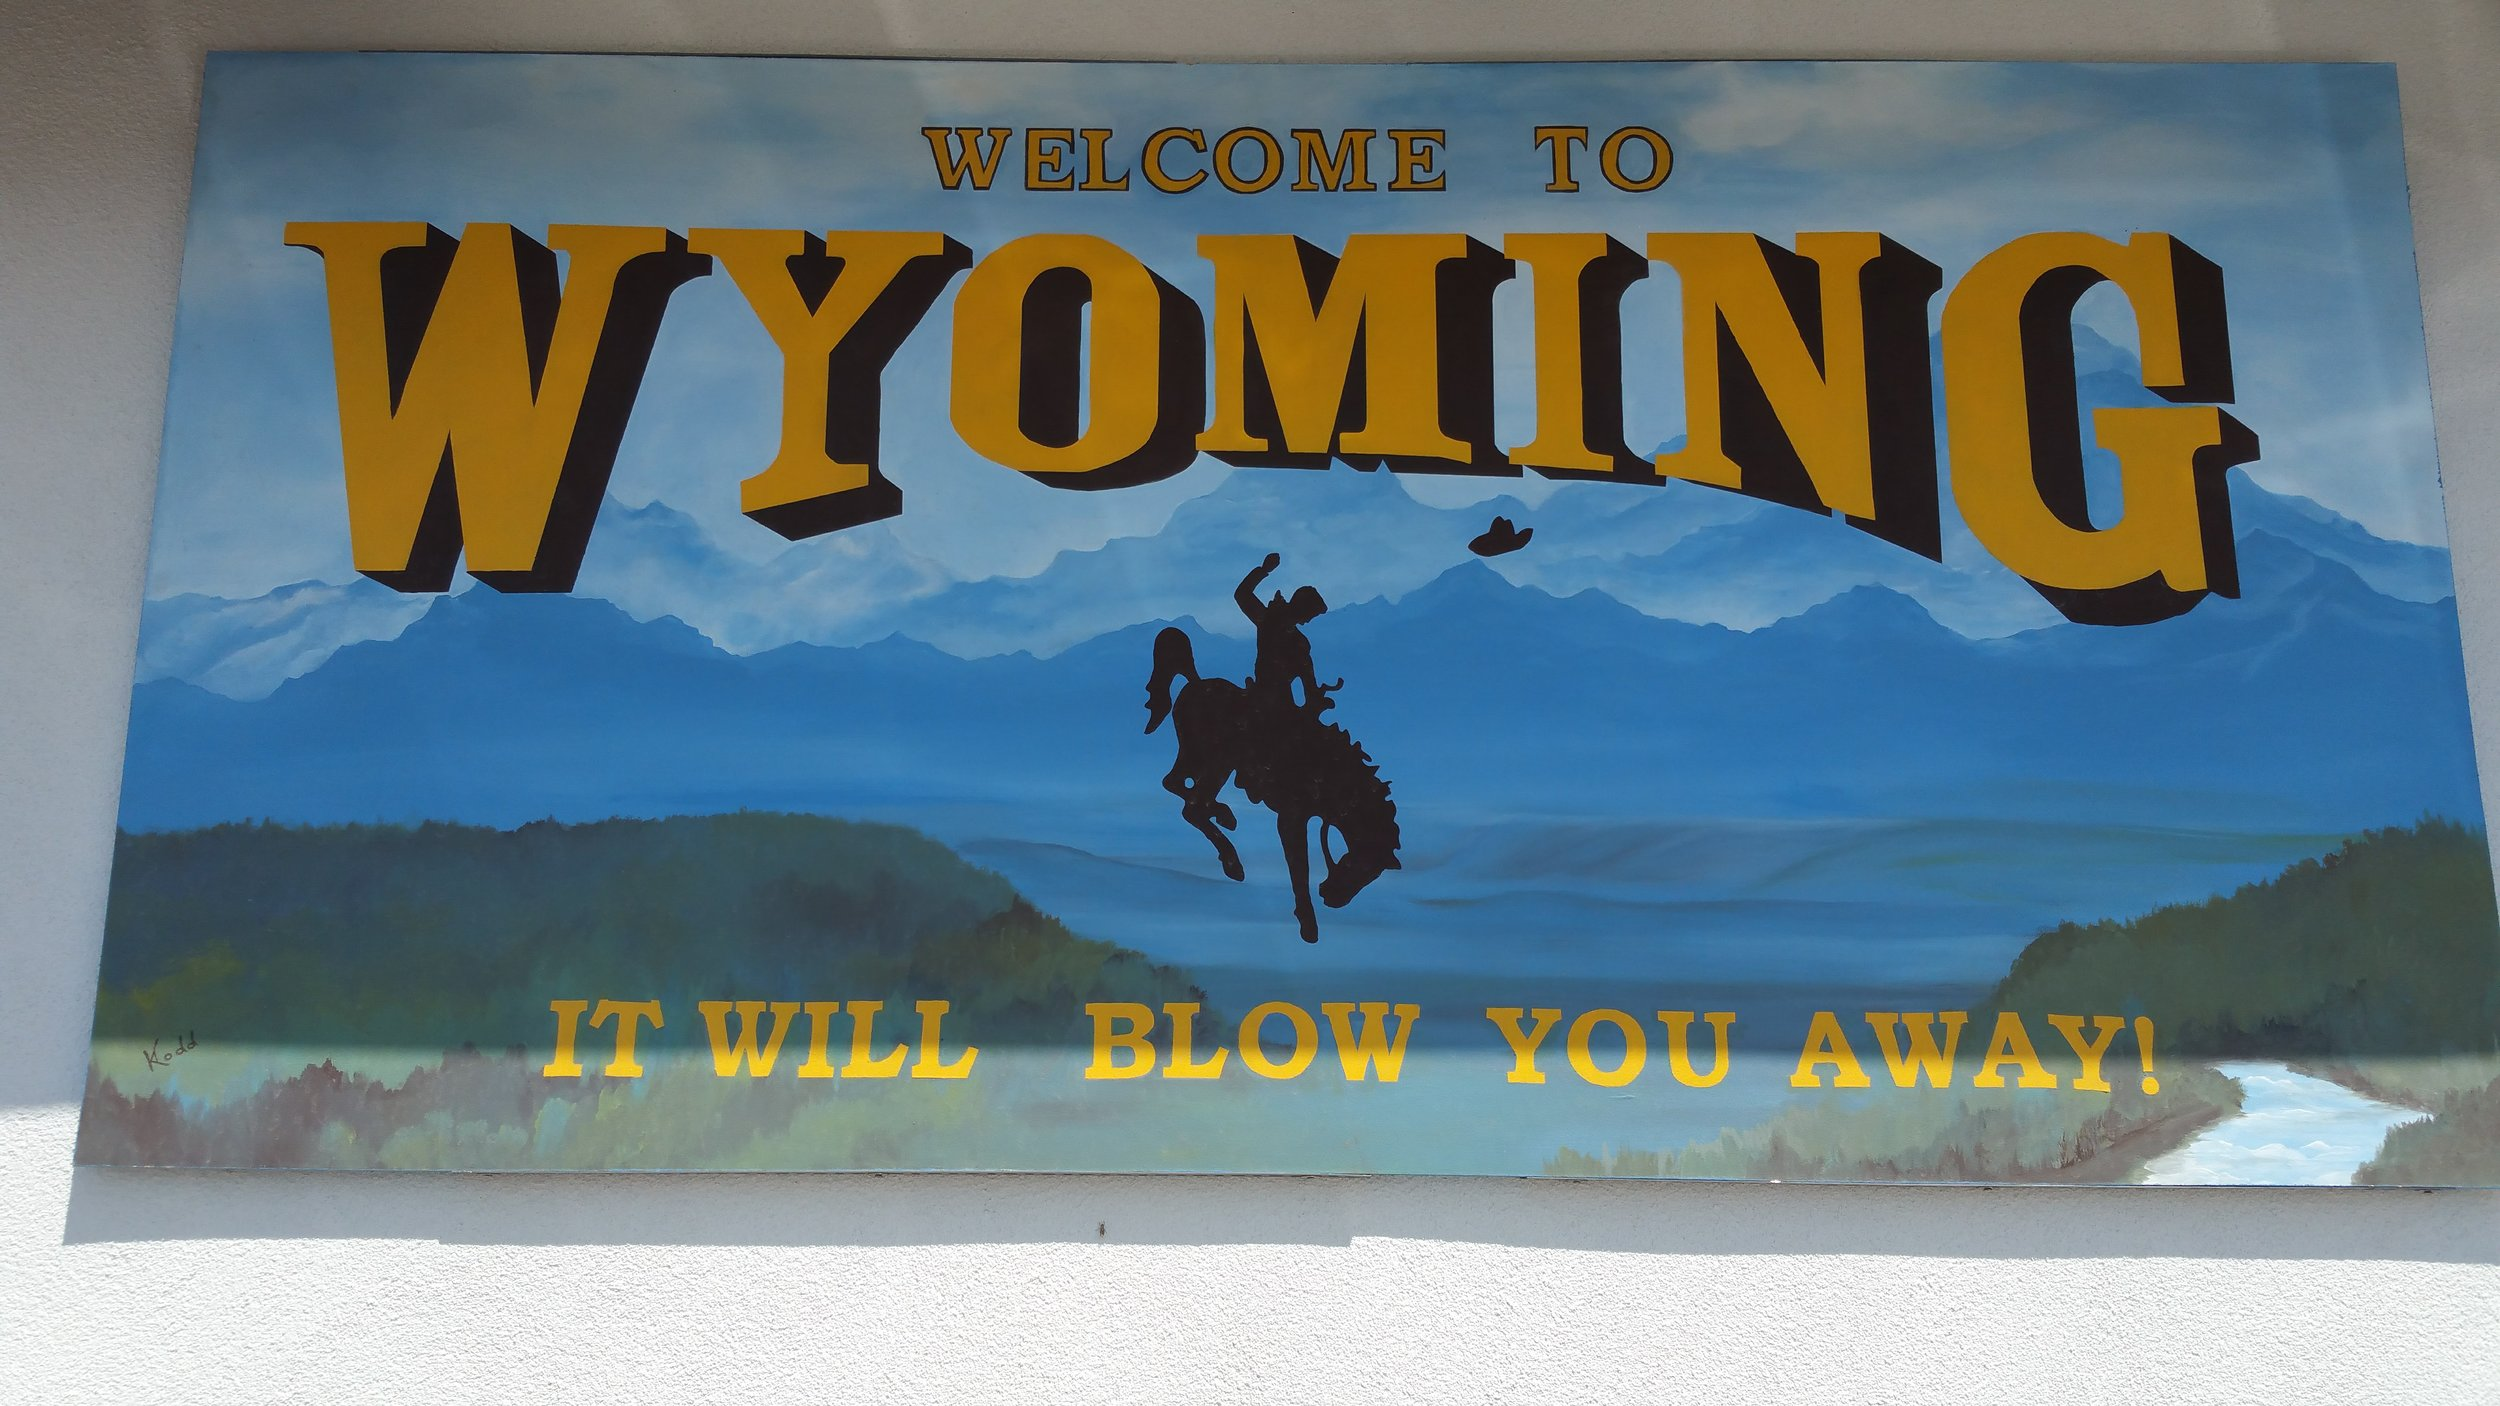 Wyoming will blow you away